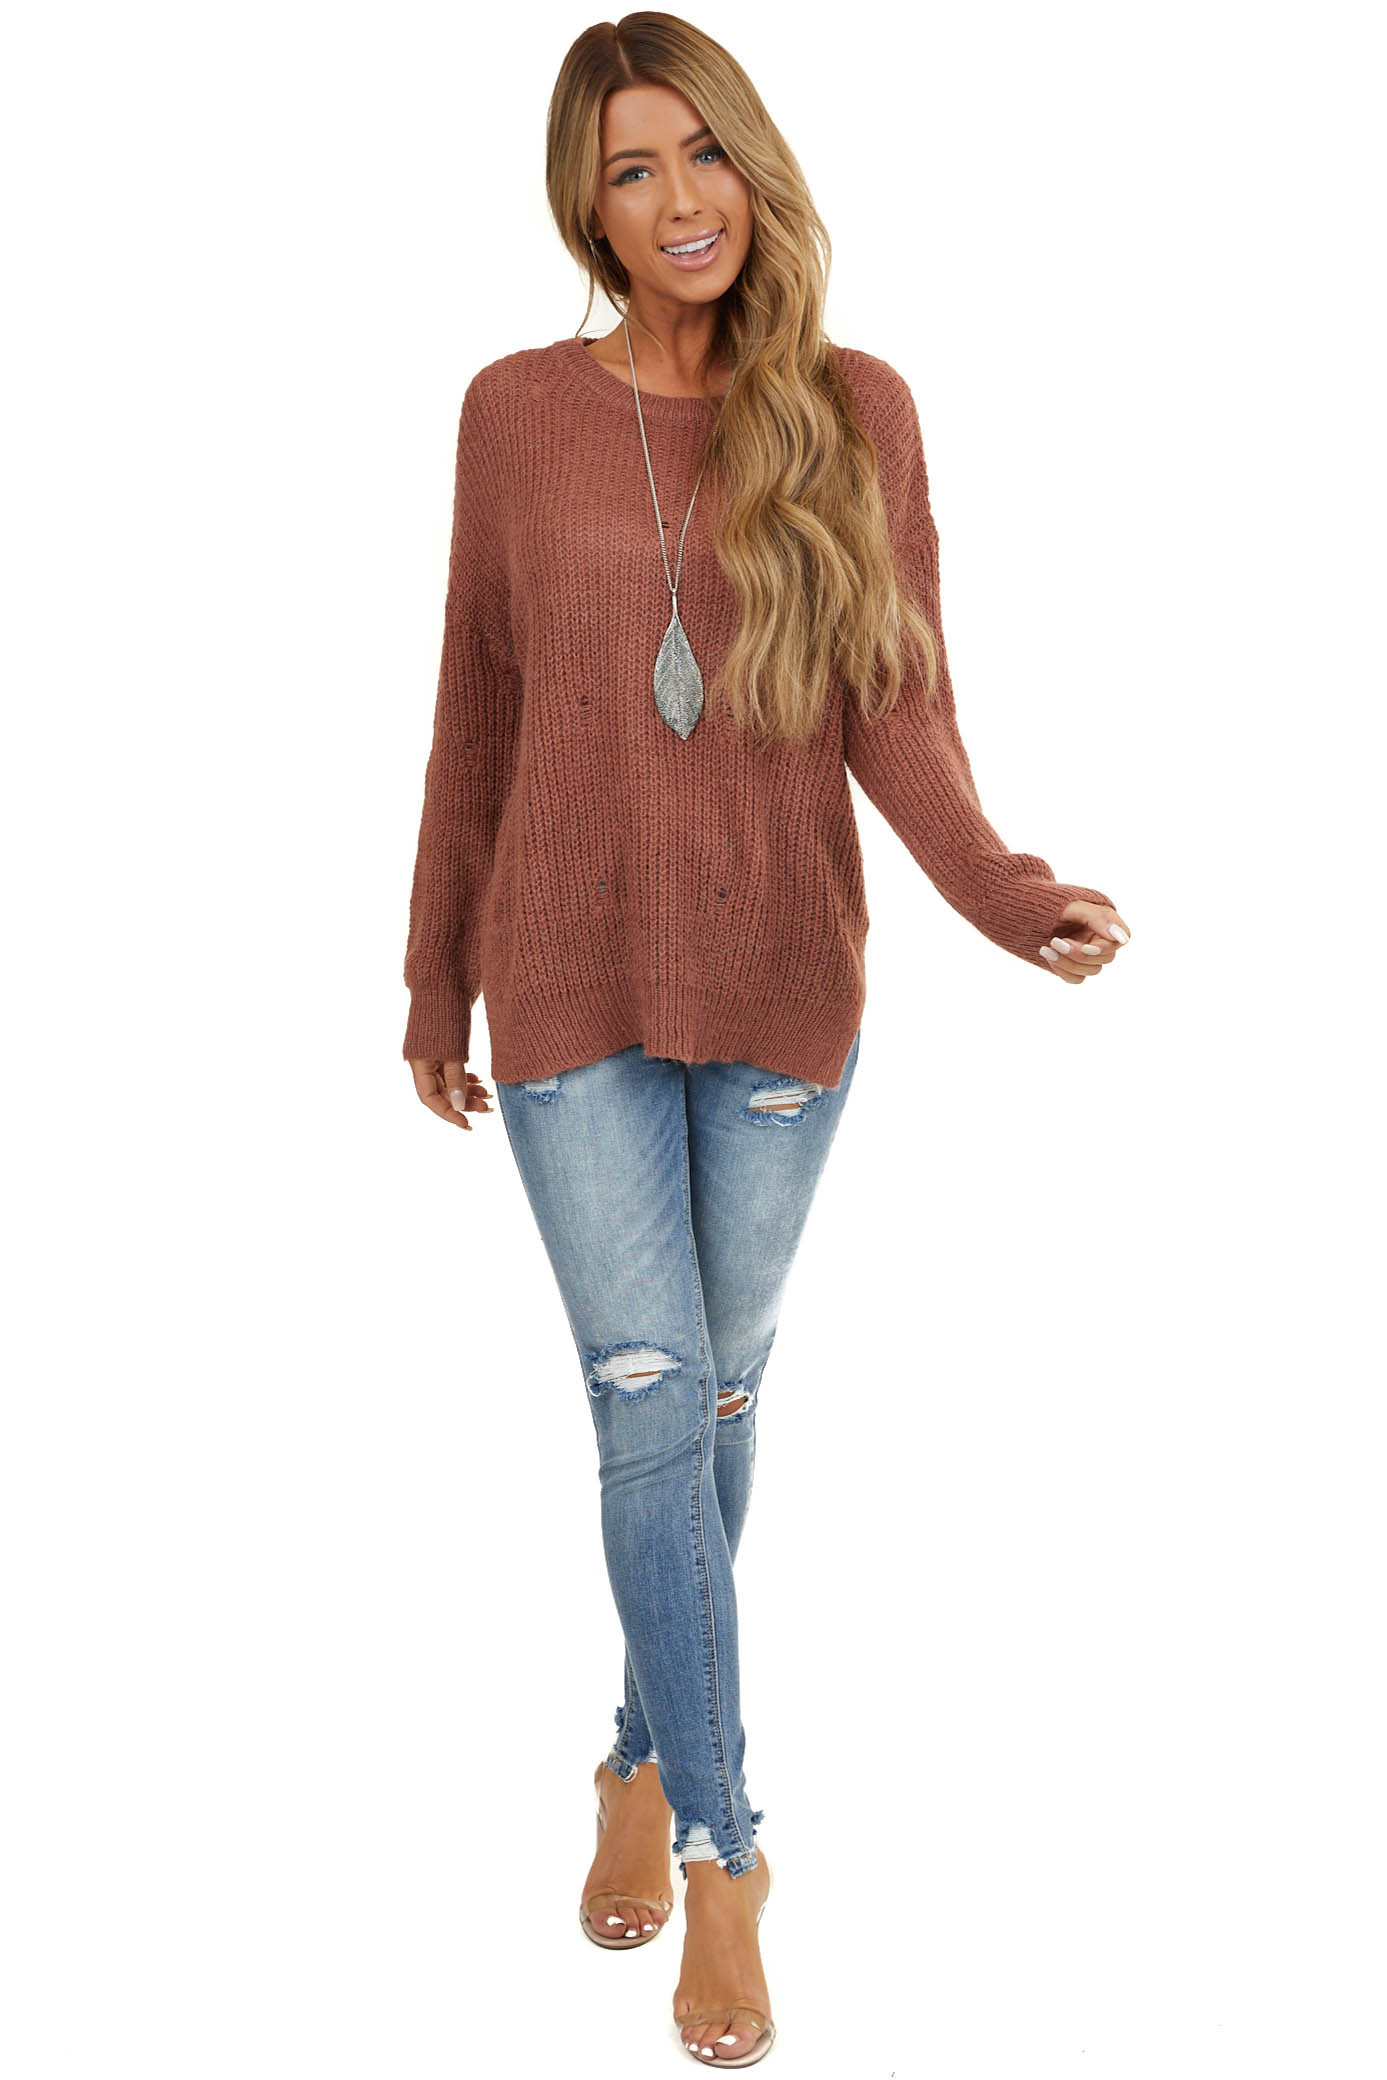 Dusty Coral Loose Knit Sweater with Distressed Details